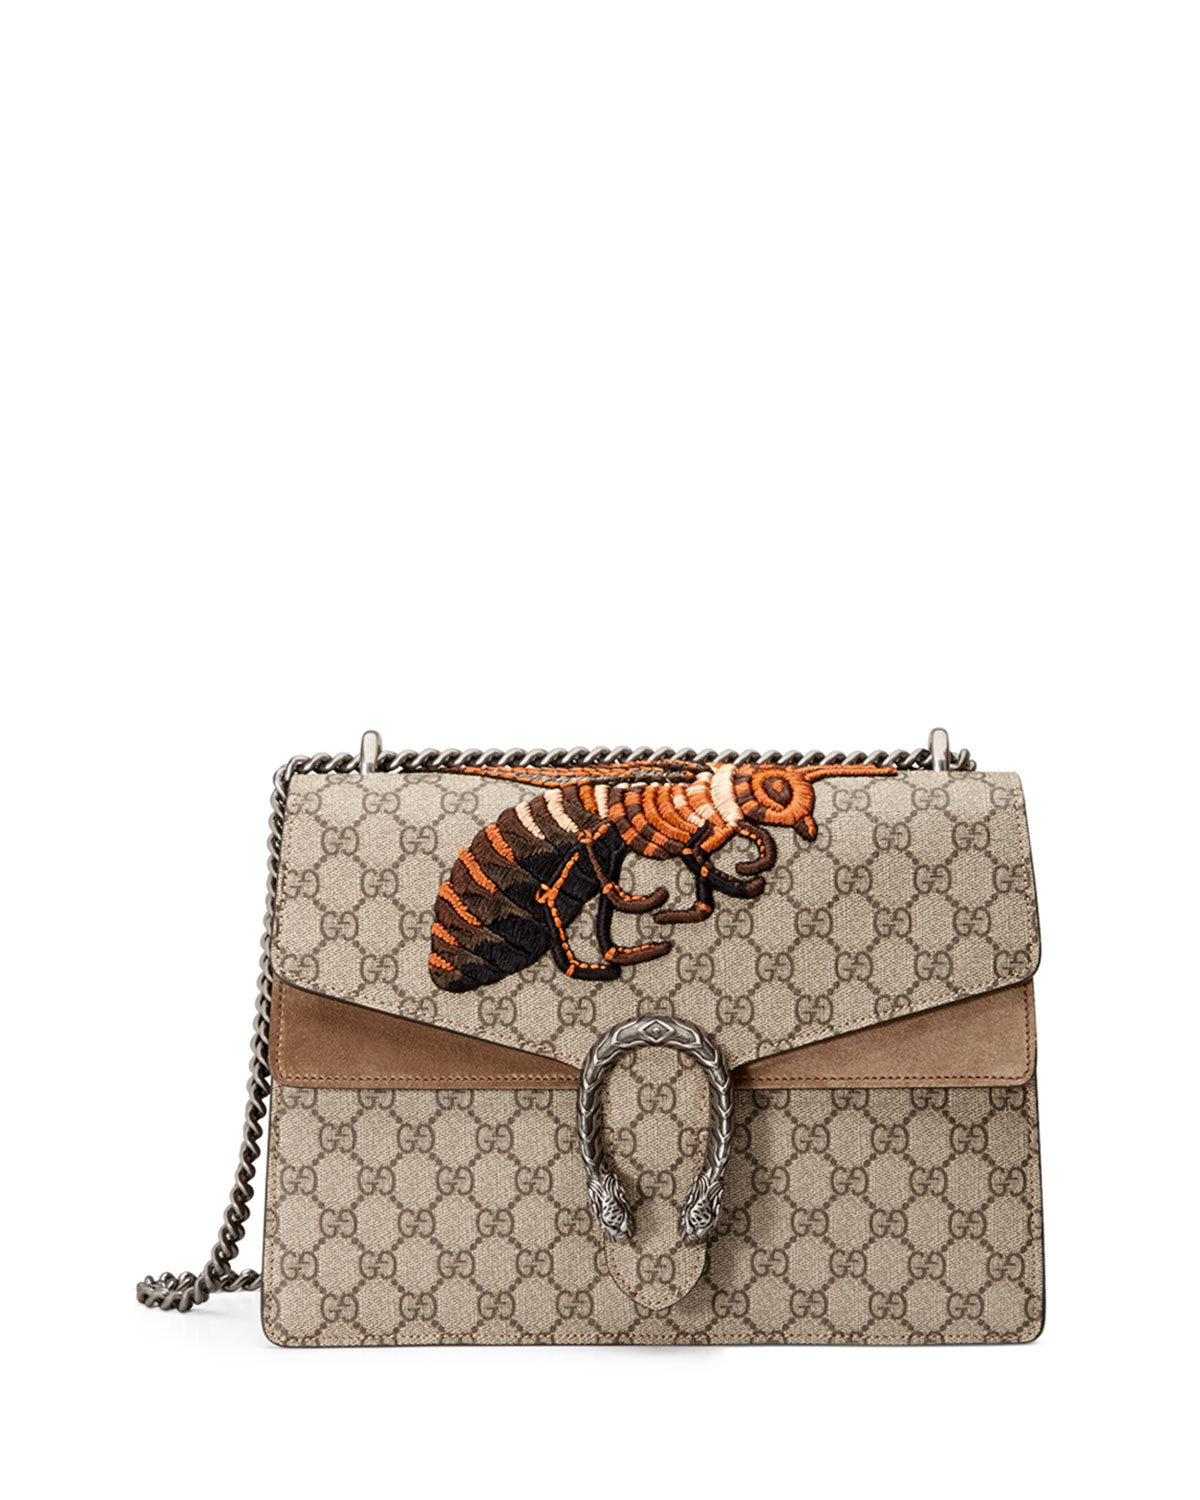 3129c173c10 Gucci Dionysus GG Supreme Canvas Embroidered Queen Bee Shoulder Bag ...